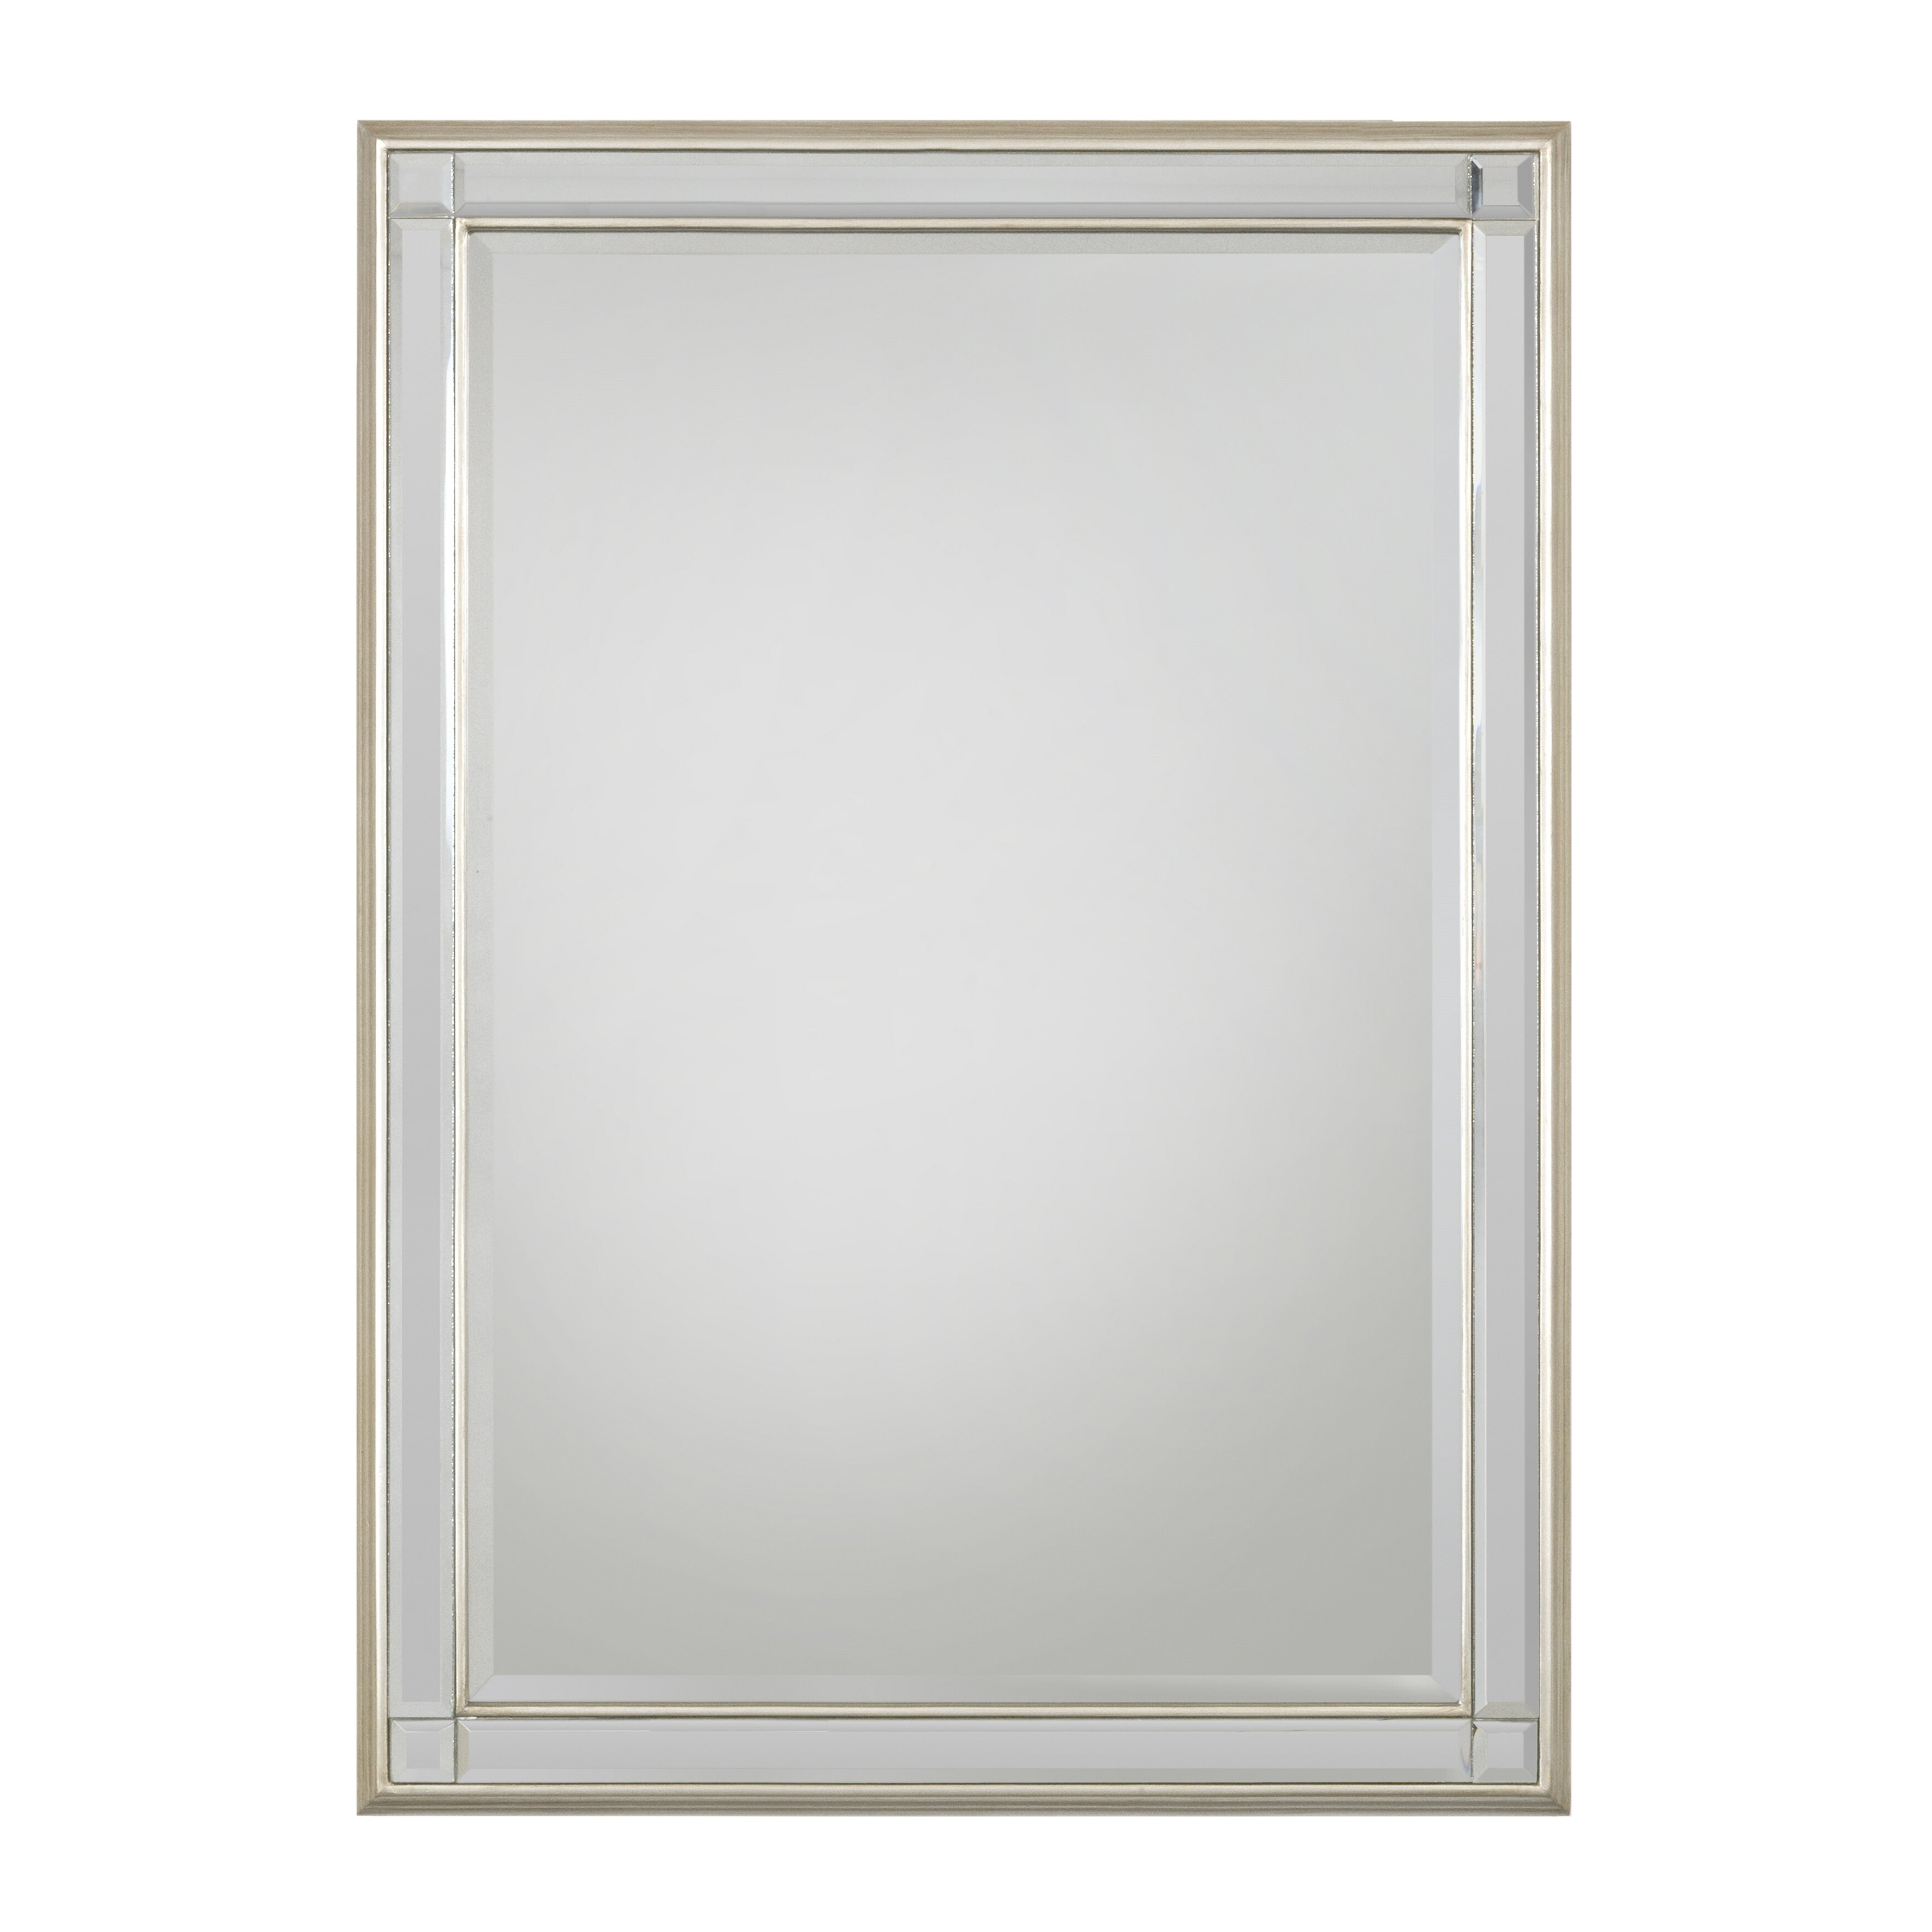 Selections by chaumont chelsea rectangle mirror wayfair for Rectangle mirror